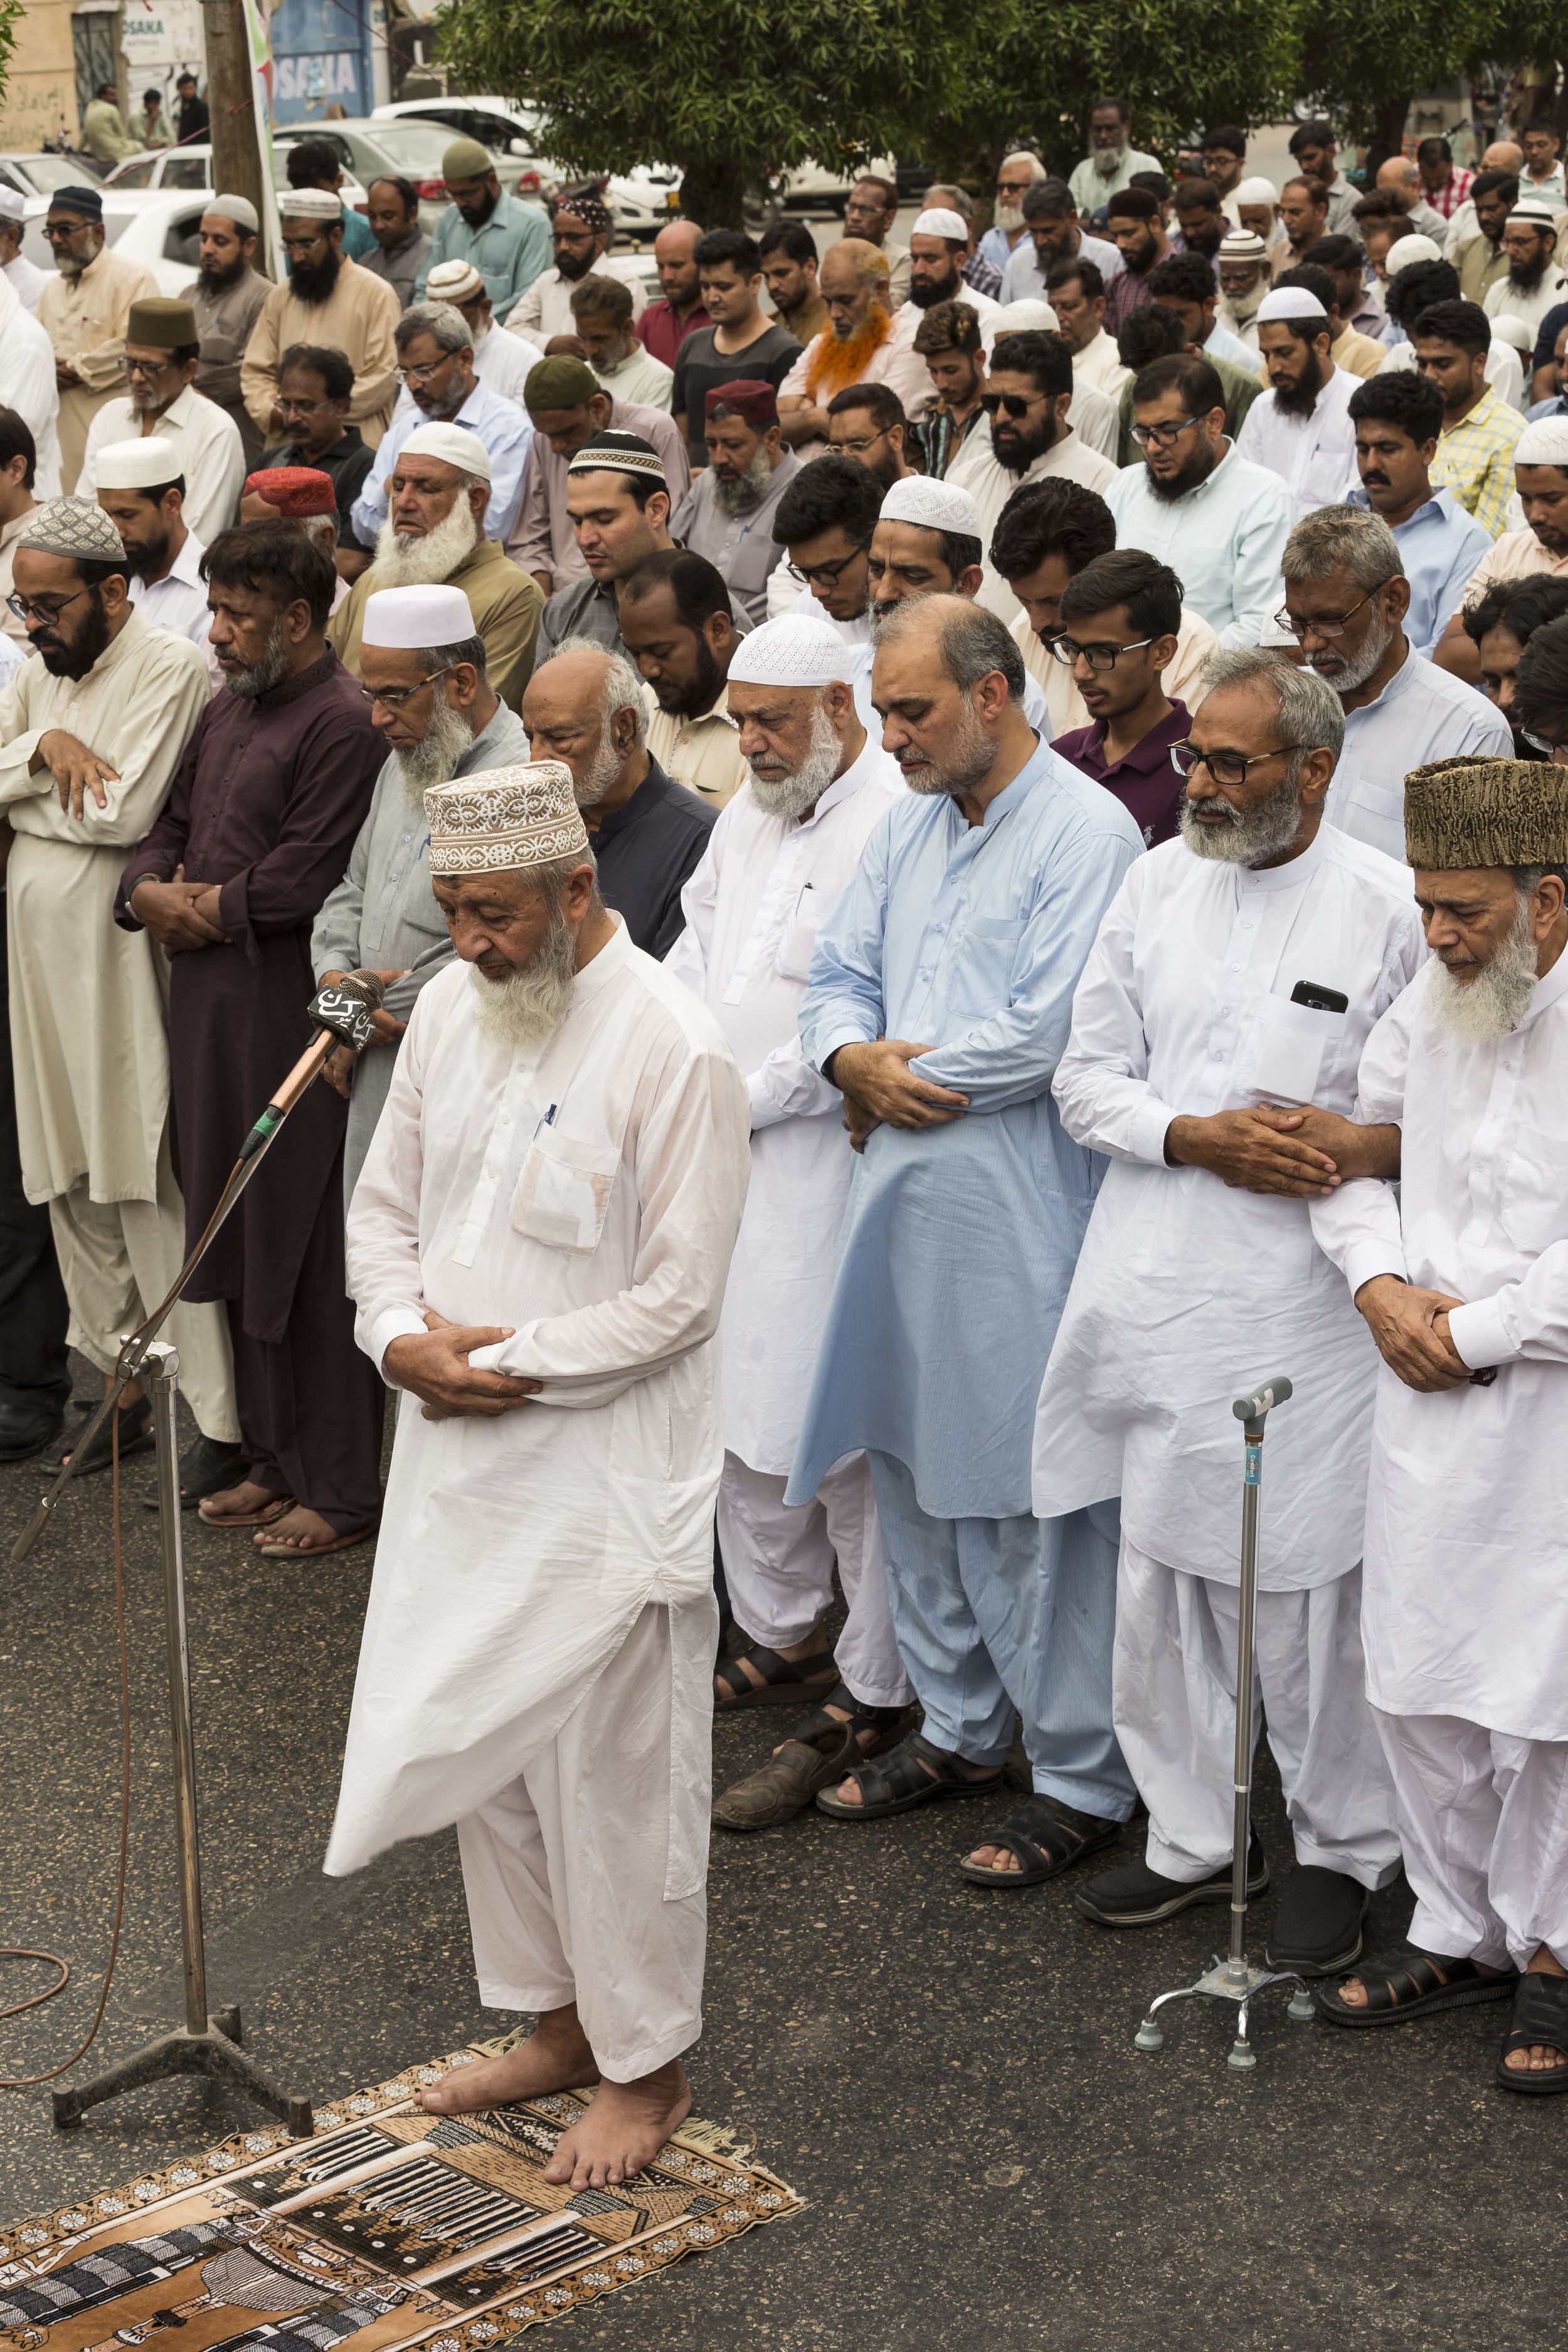 Jamaat-e-Islami activists gather for a funeral prayer for Mohamed Morsi, former president of Egypt, in Karachi, Pakistan on June 18, 2019. Morsi is said to have died during a break in his court proceedings in Cairo, Egypt.